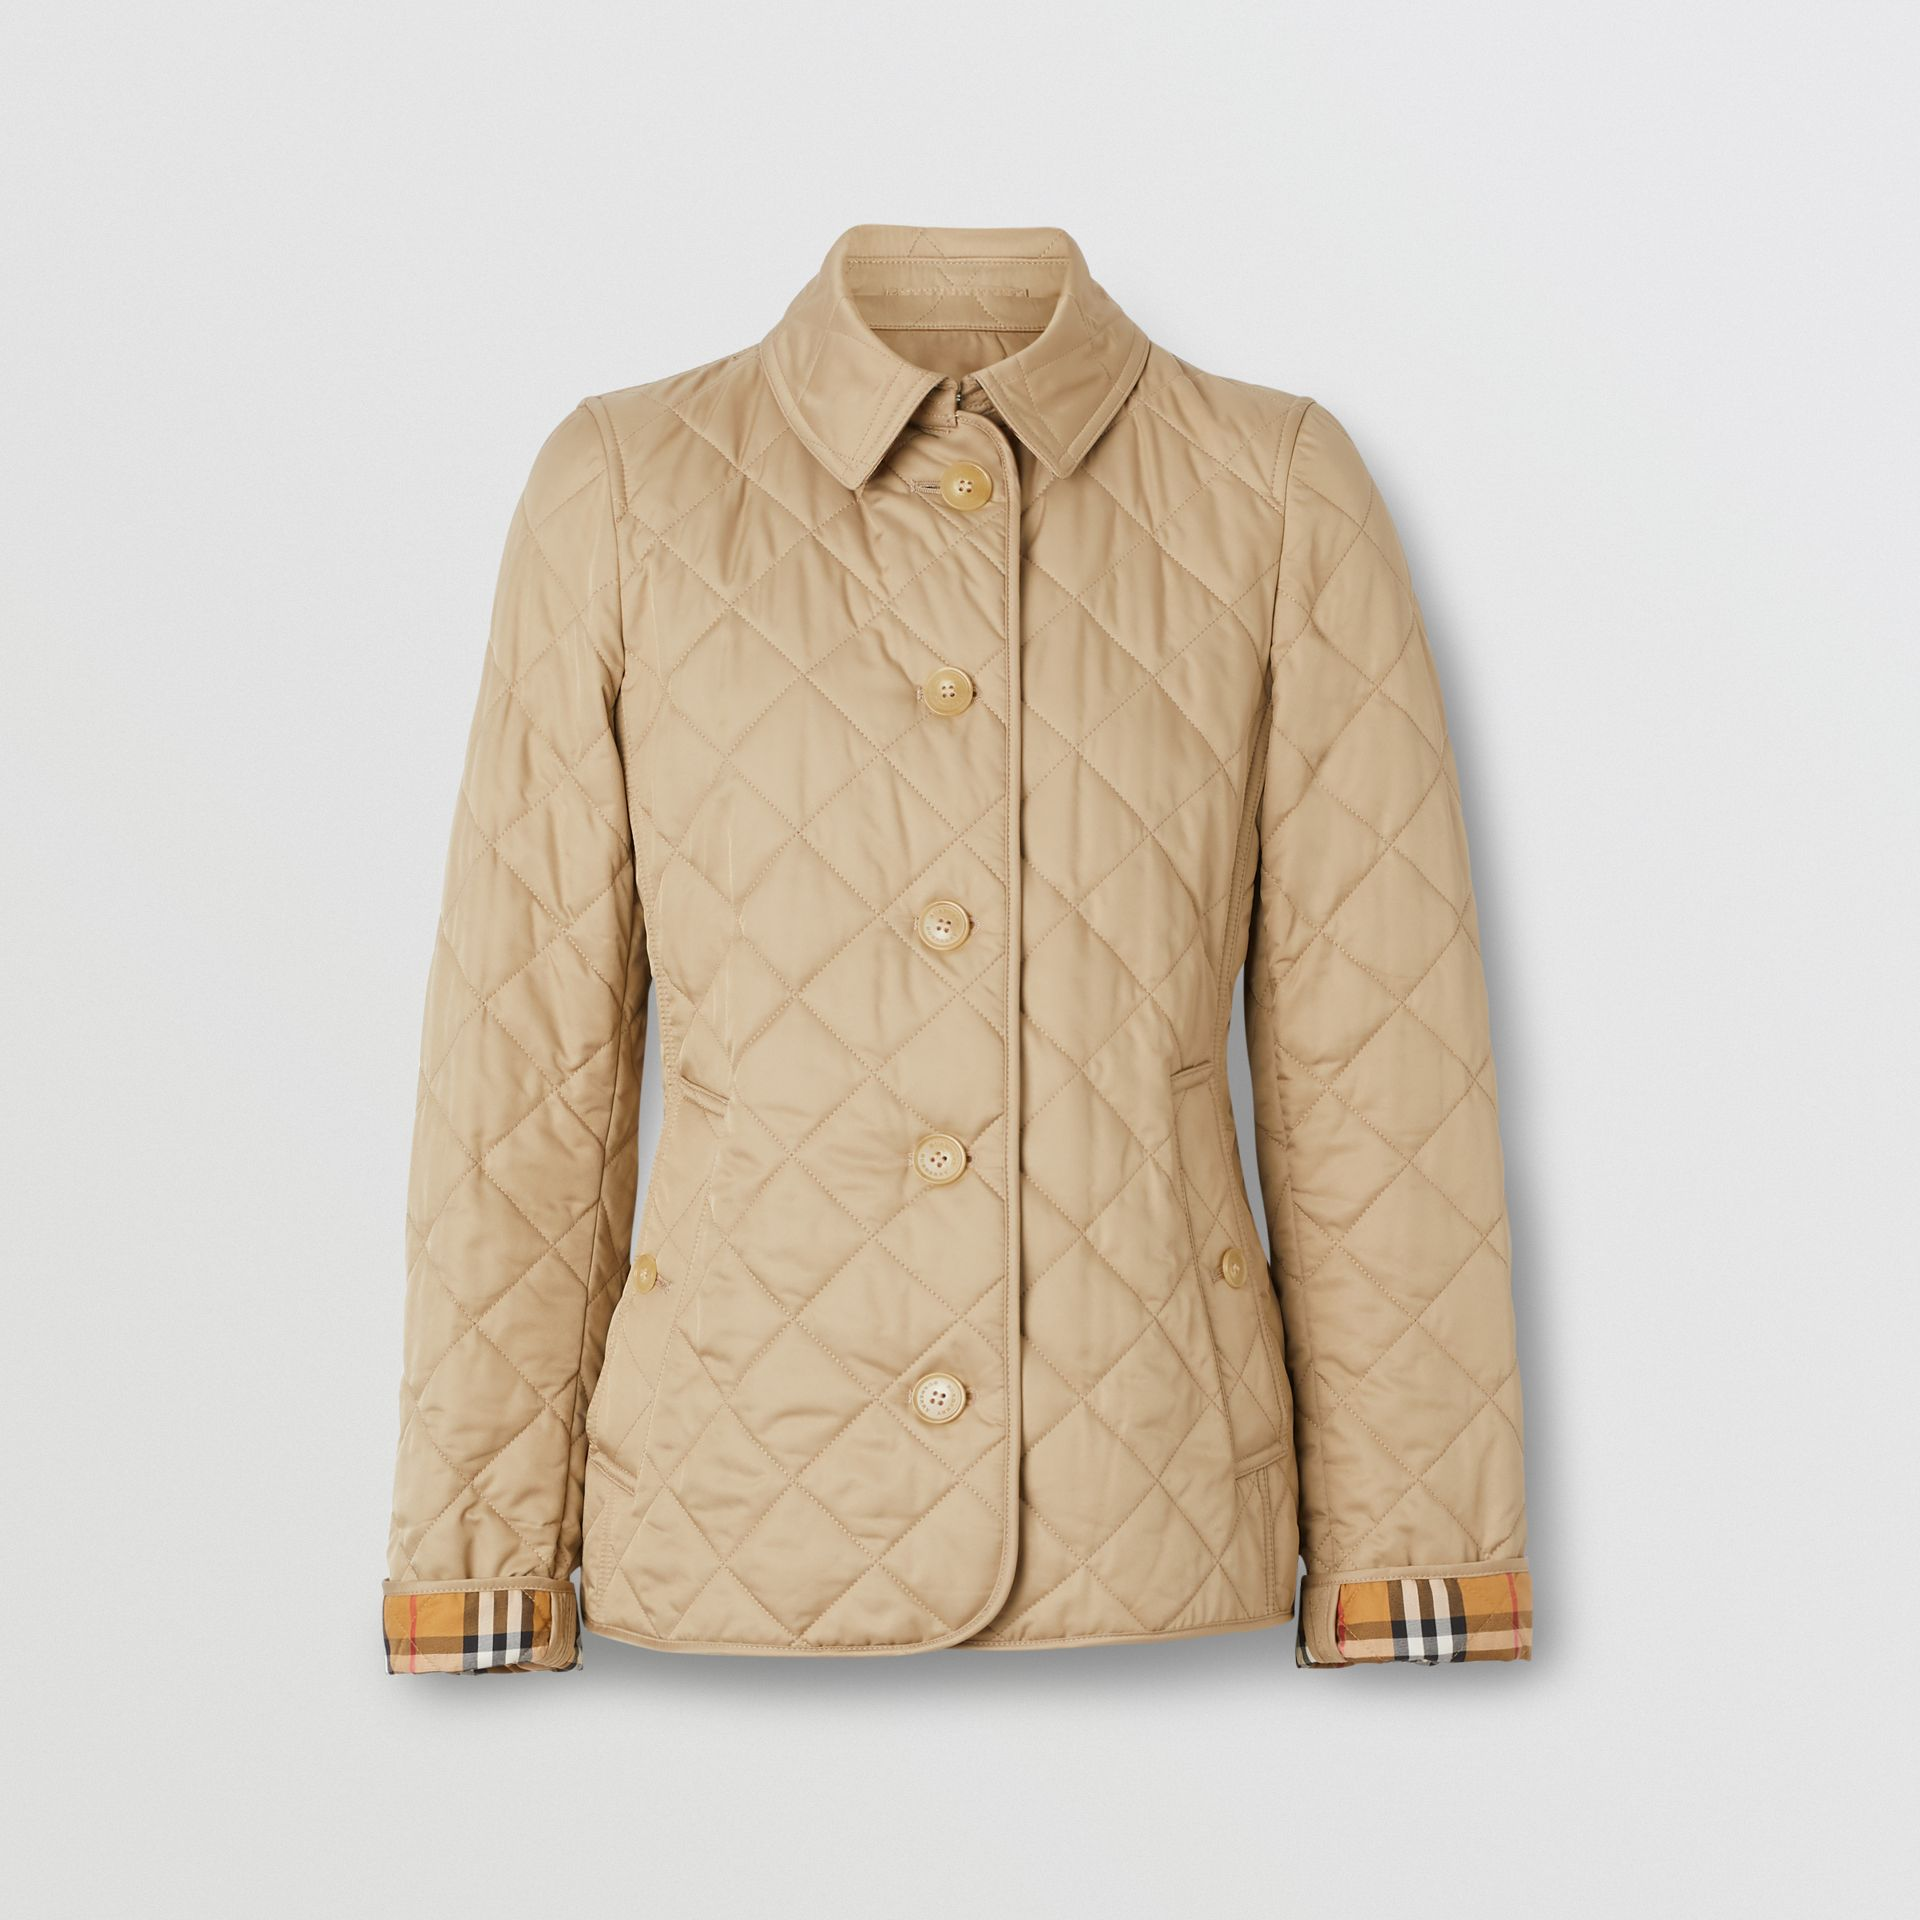 Jacke in Rautensteppung (Canvas) - Damen | Burberry - Galerie-Bild 3